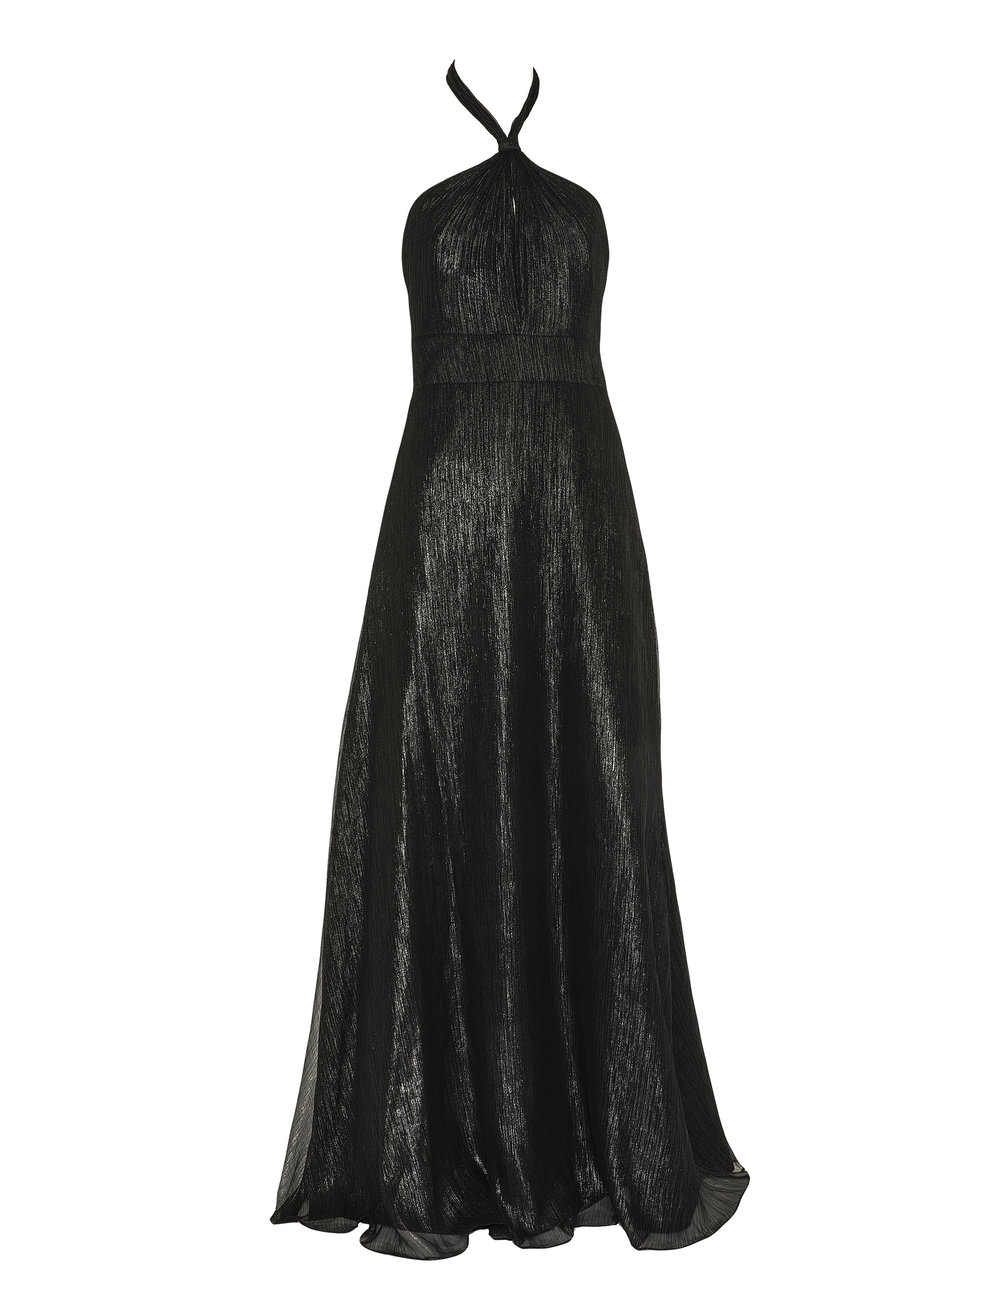 Monique Lhuillier 450488 Dark Charcoal Metallic chiffon